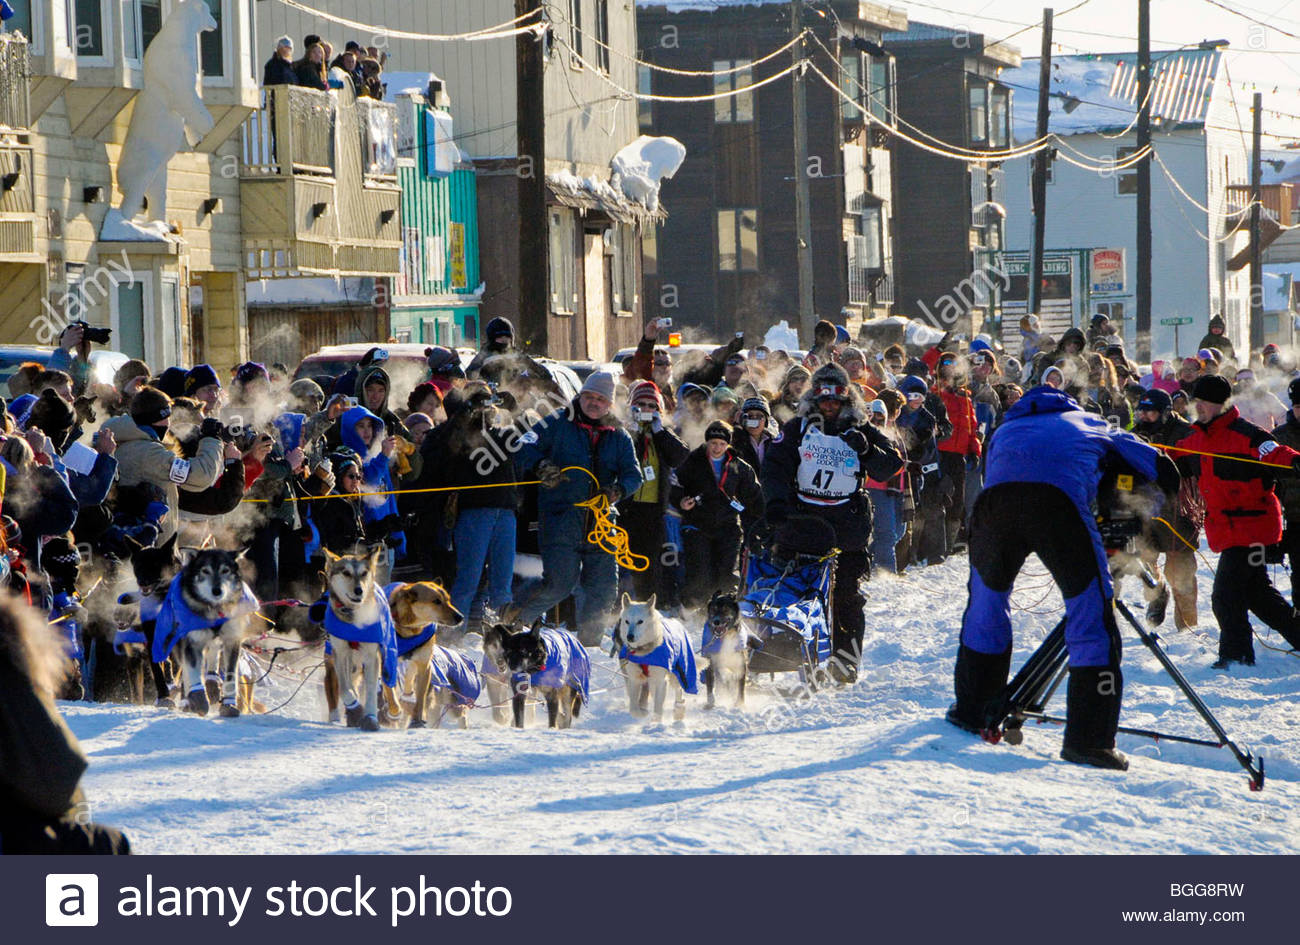 Lance Mackey arrives down Front St. amidst crowds and cheers in Nome, Alaska to win Iditarod 37, March 18, 2009, - Stock Image